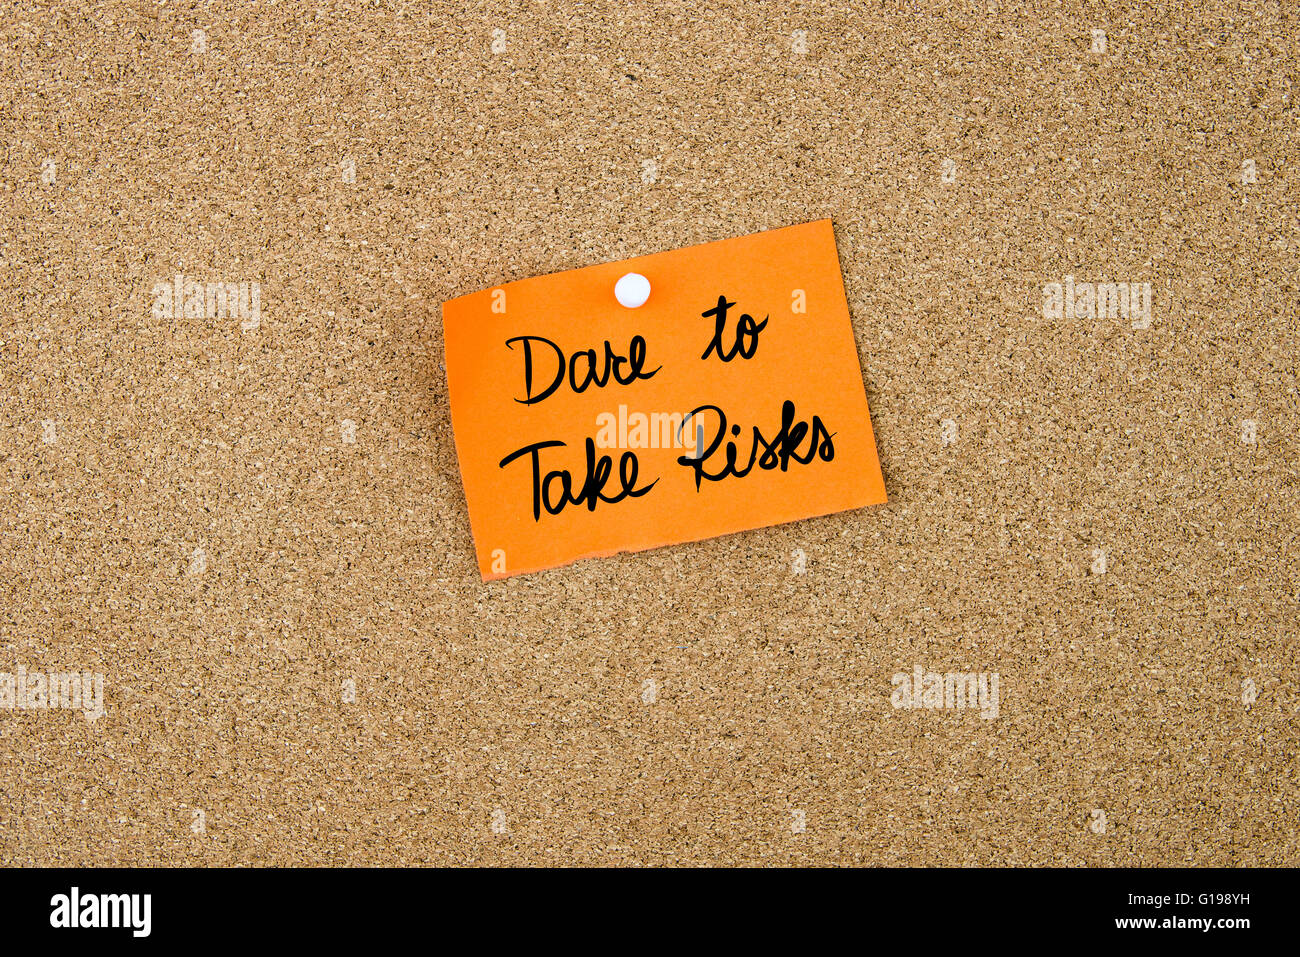 Dare To Take Risks written on orange paper note pinned on cork board with white thumbtacks, copy space available - Stock Image